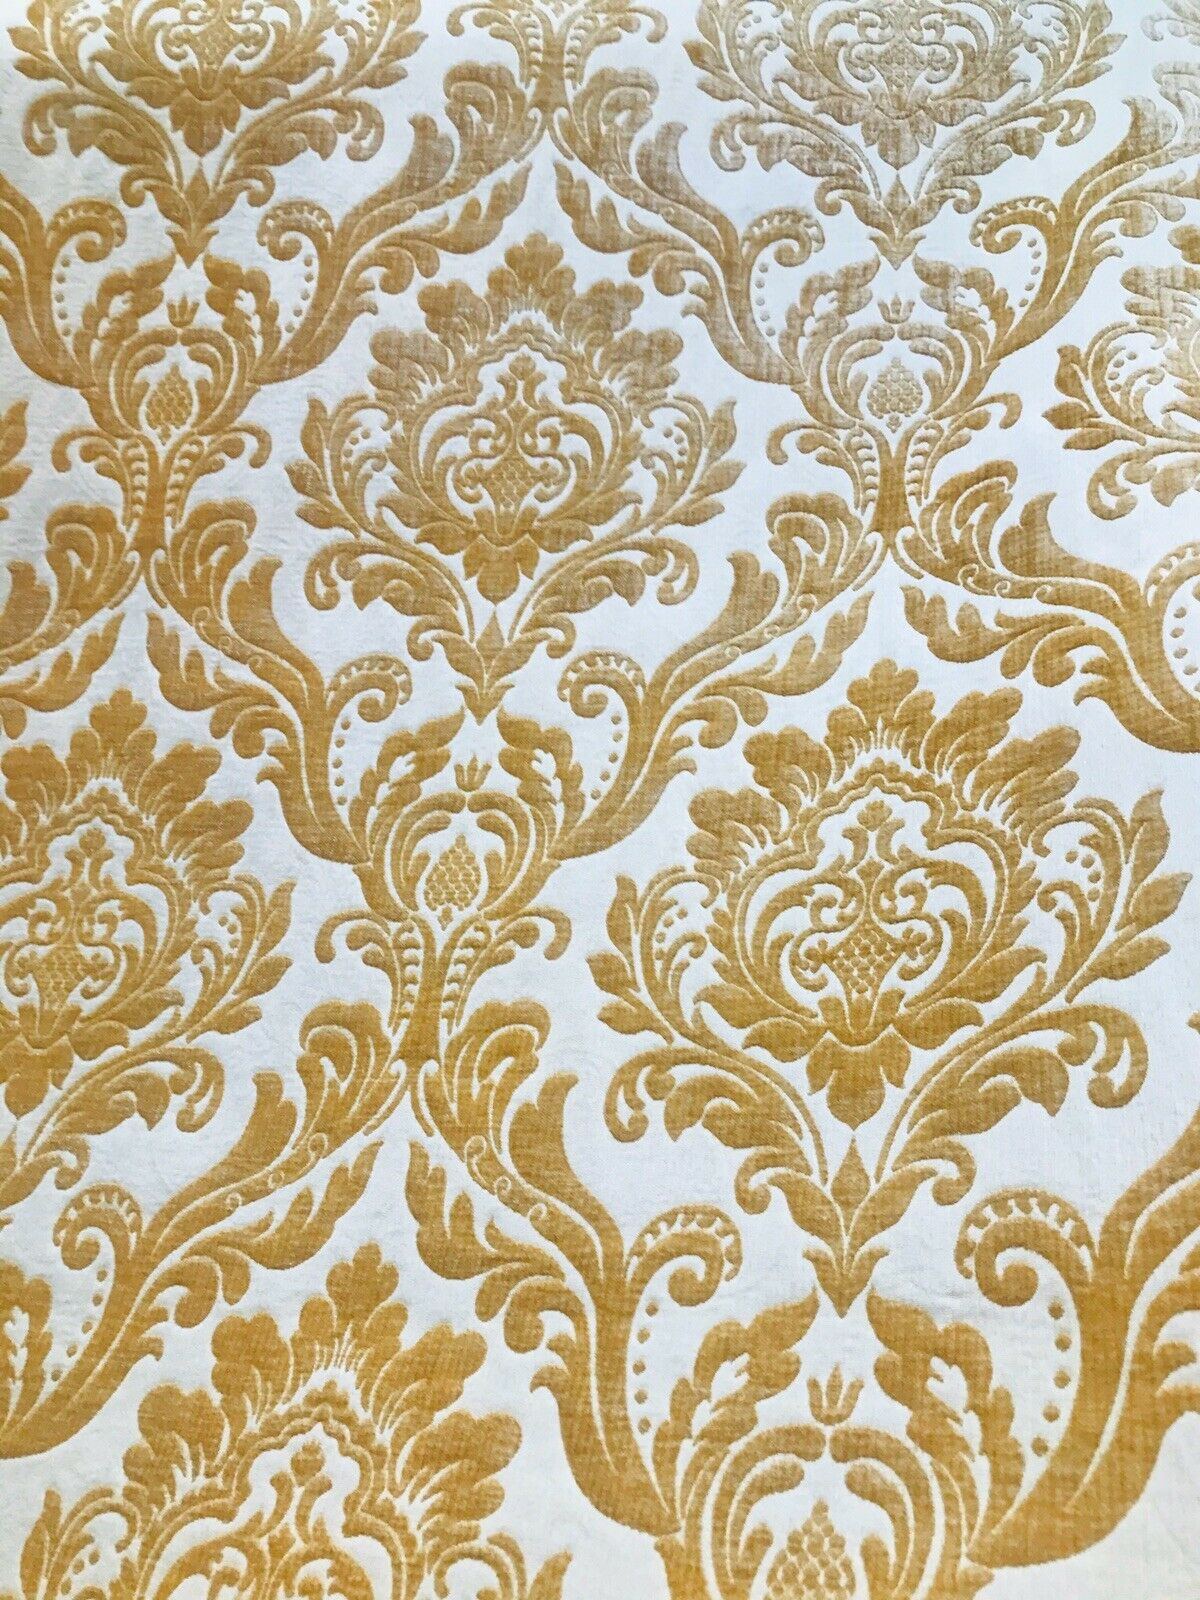 NEW! Designer Damask Burnout Chenille Velvet Fabric - Honey Gold BTY